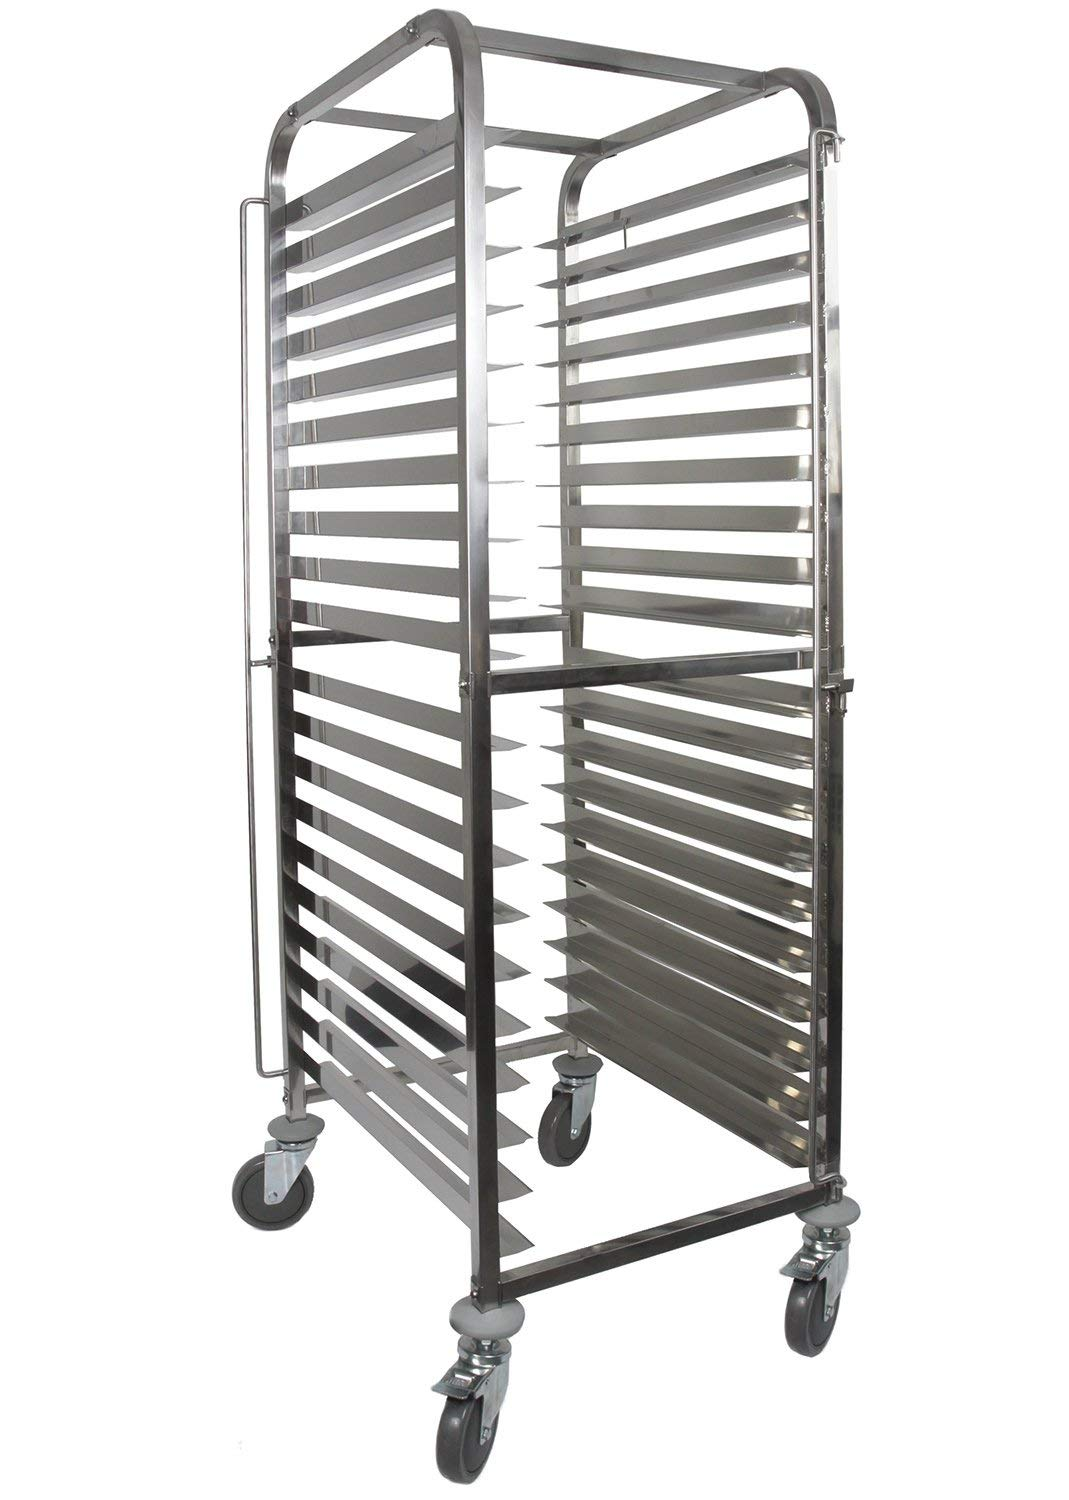 Front-Load Knock Down Bakery Rack All Stainless Steel, for Full Size Sheet Pans (1, For 20 trays)